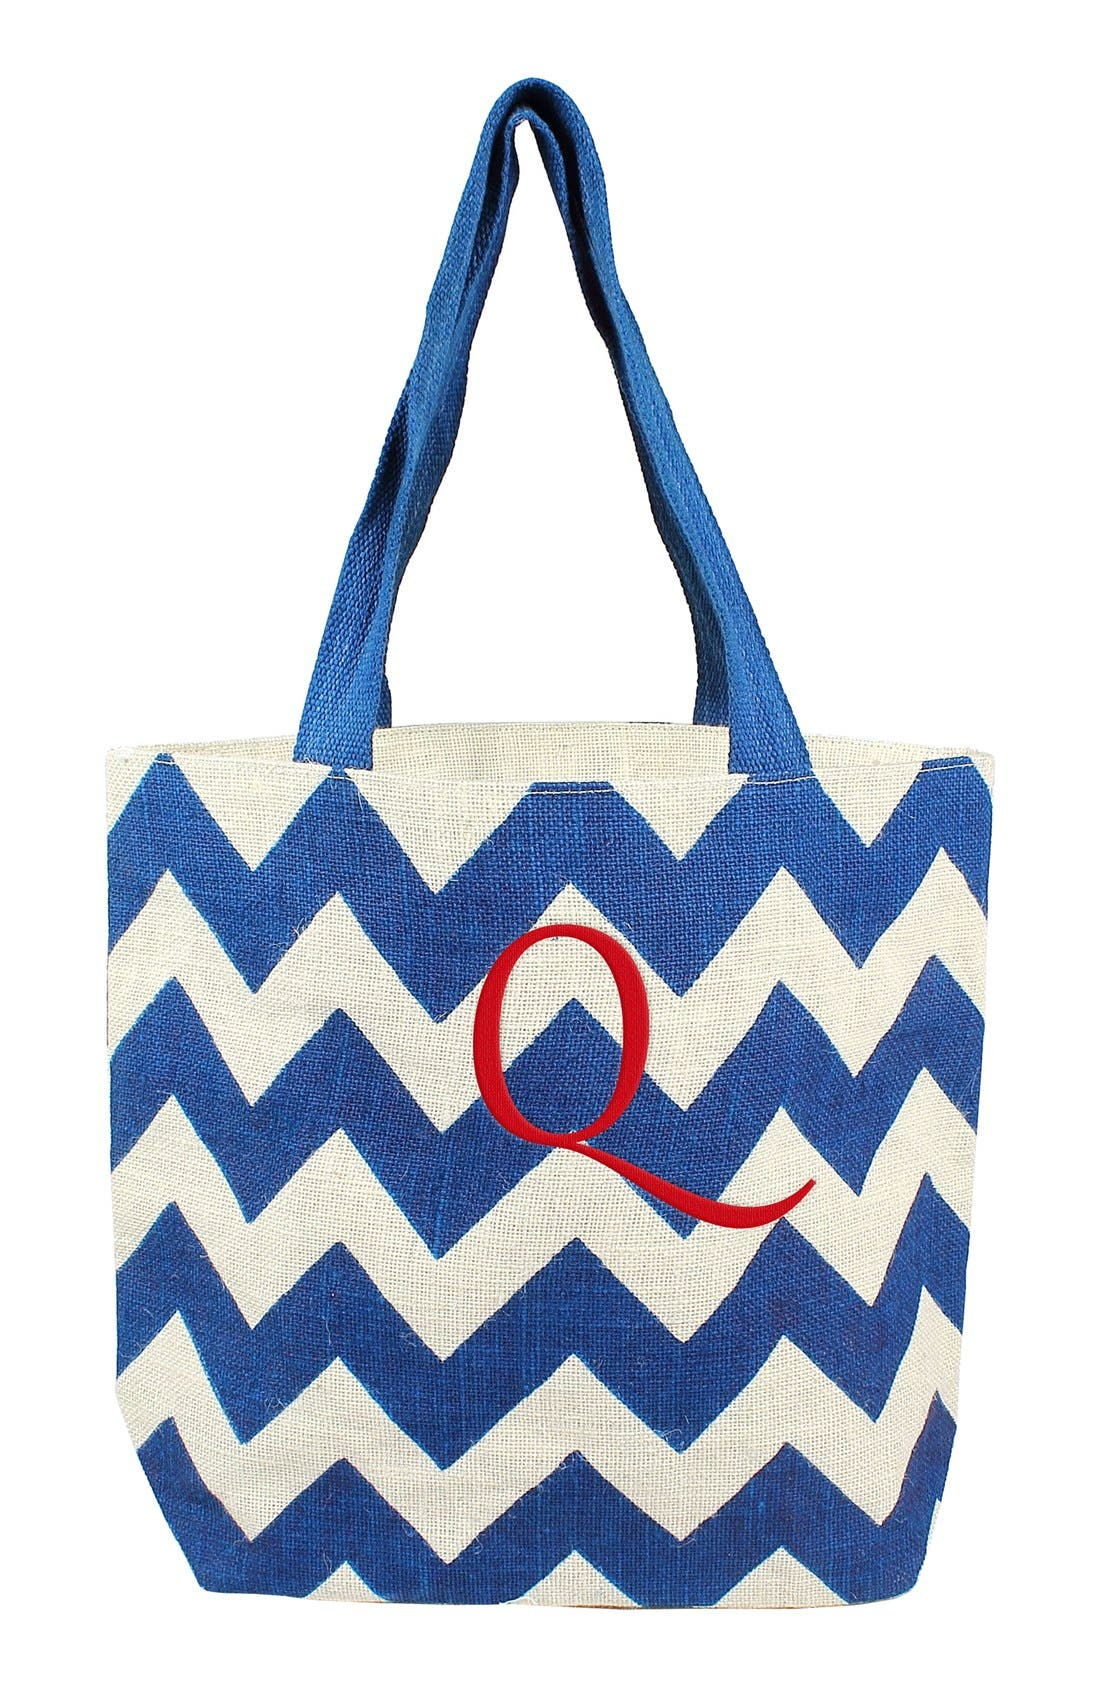 Monogram Chevron Print Jute Tote,                         Main,                         color, Blue/ Parchment - Q